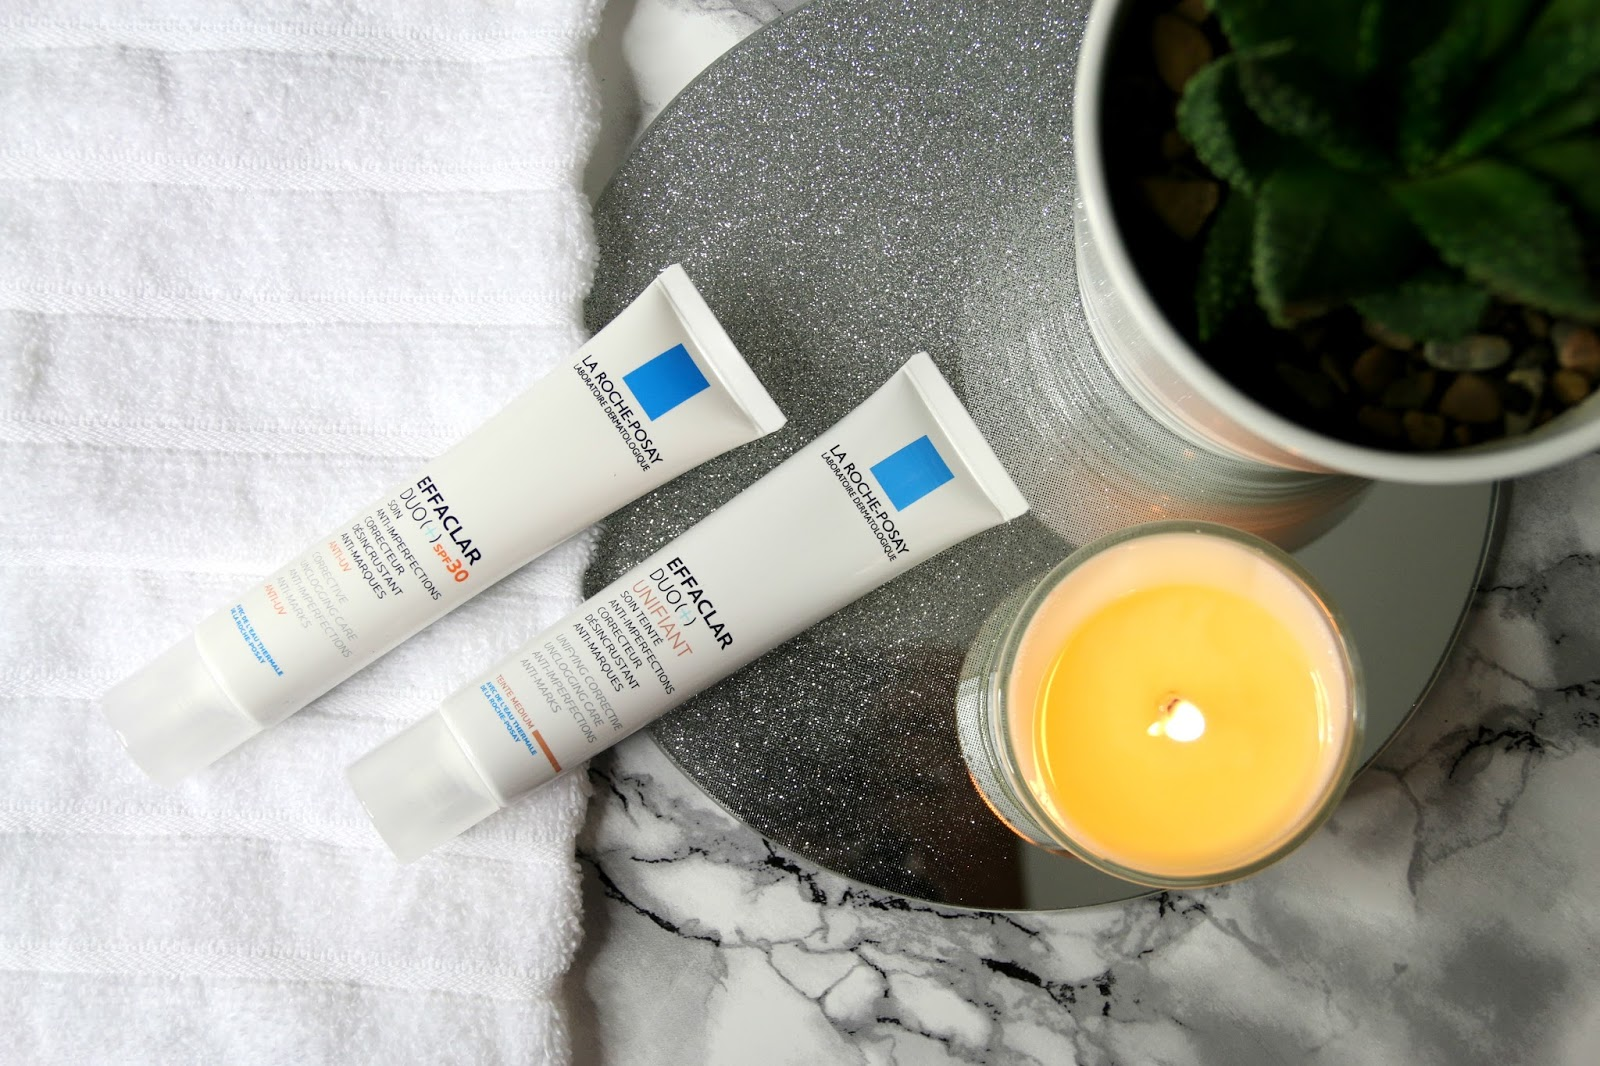 La Roche-Posay Effaclar Duo+ SPF 30 and Unifant Tinted Moisturiser